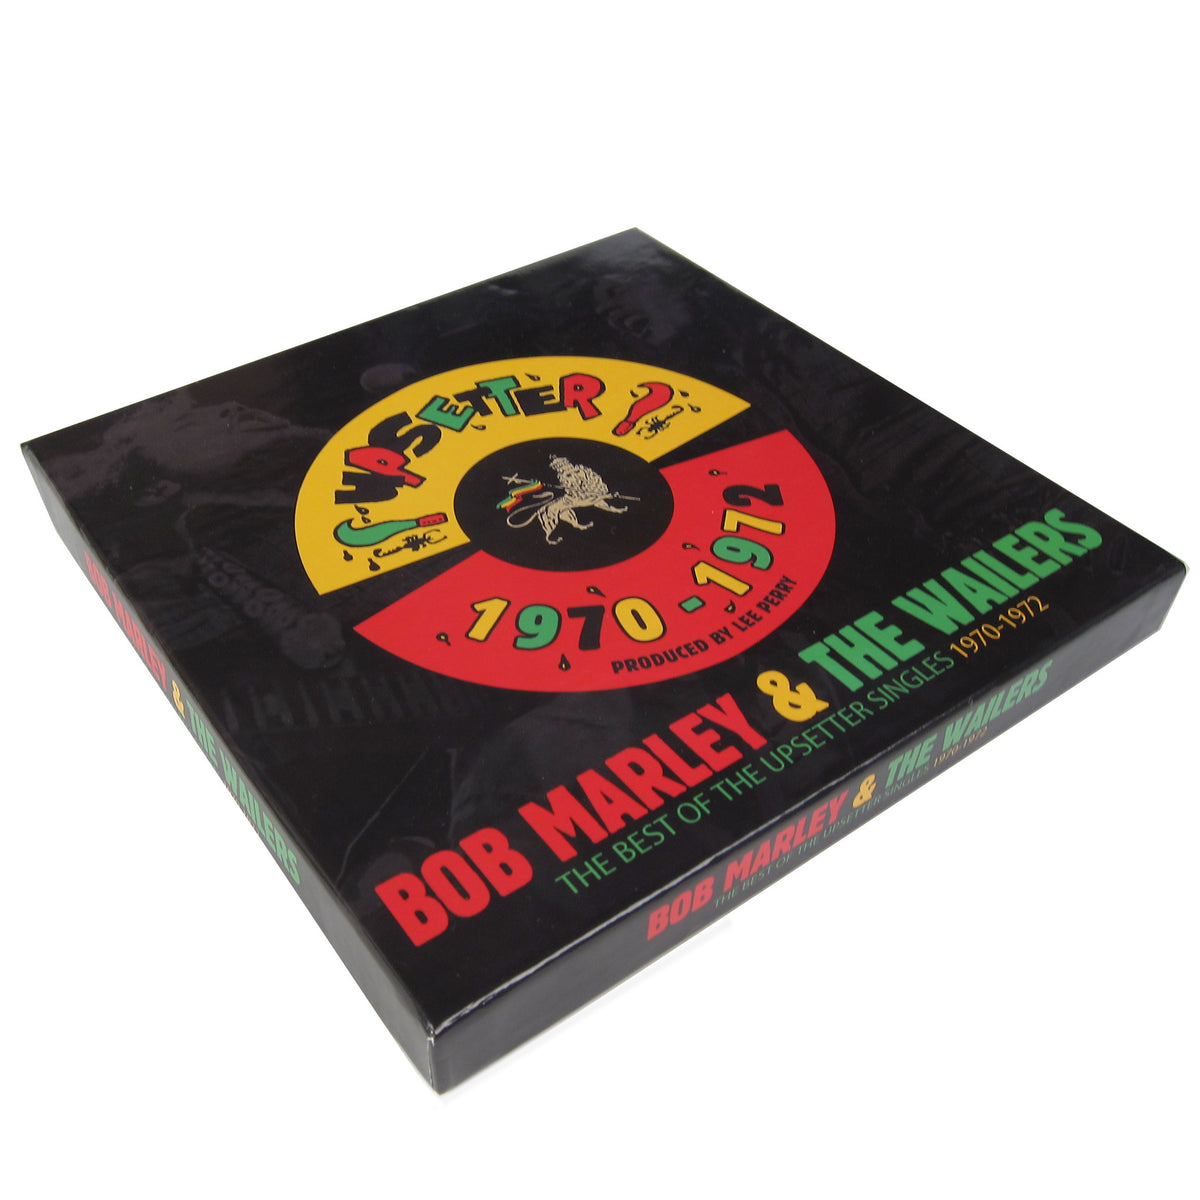 "Bob Marley: The Best Of The Upsetter Singles 1970-1972 (Lee Perry) 7x7"" Boxset box"